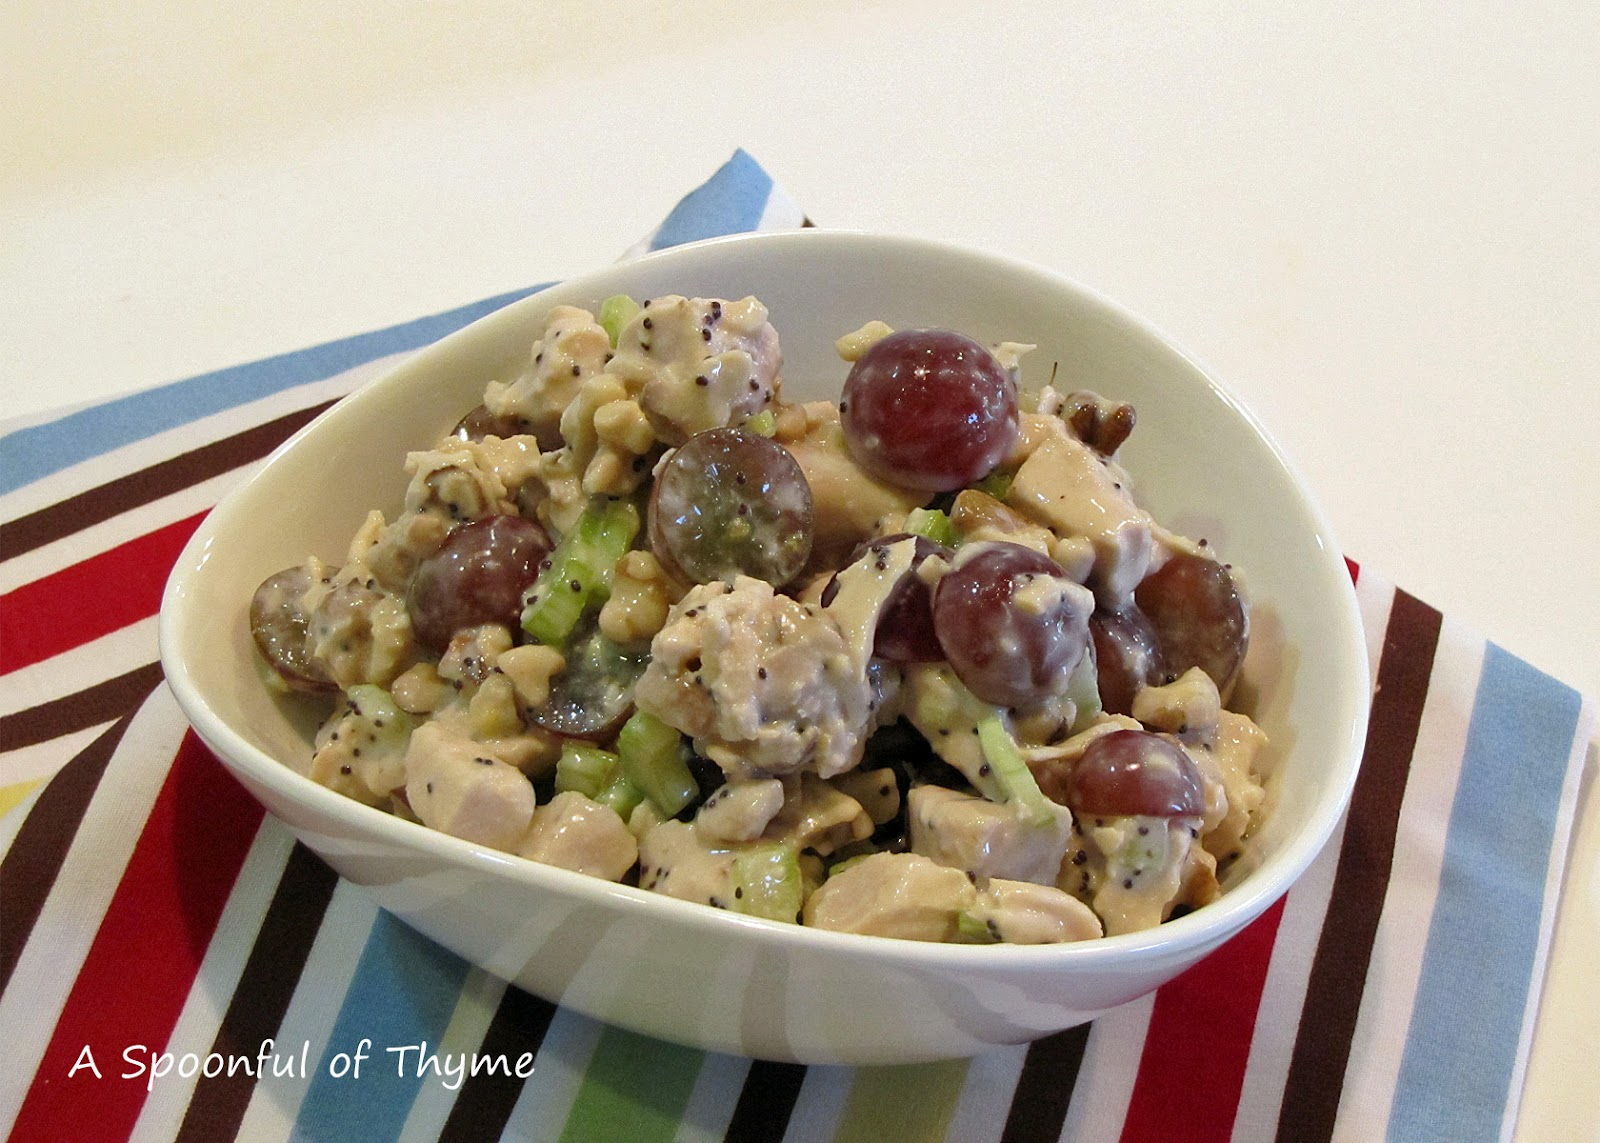 A Spoonful of Thyme: Whole Foods' Sonoma Chicken Salad